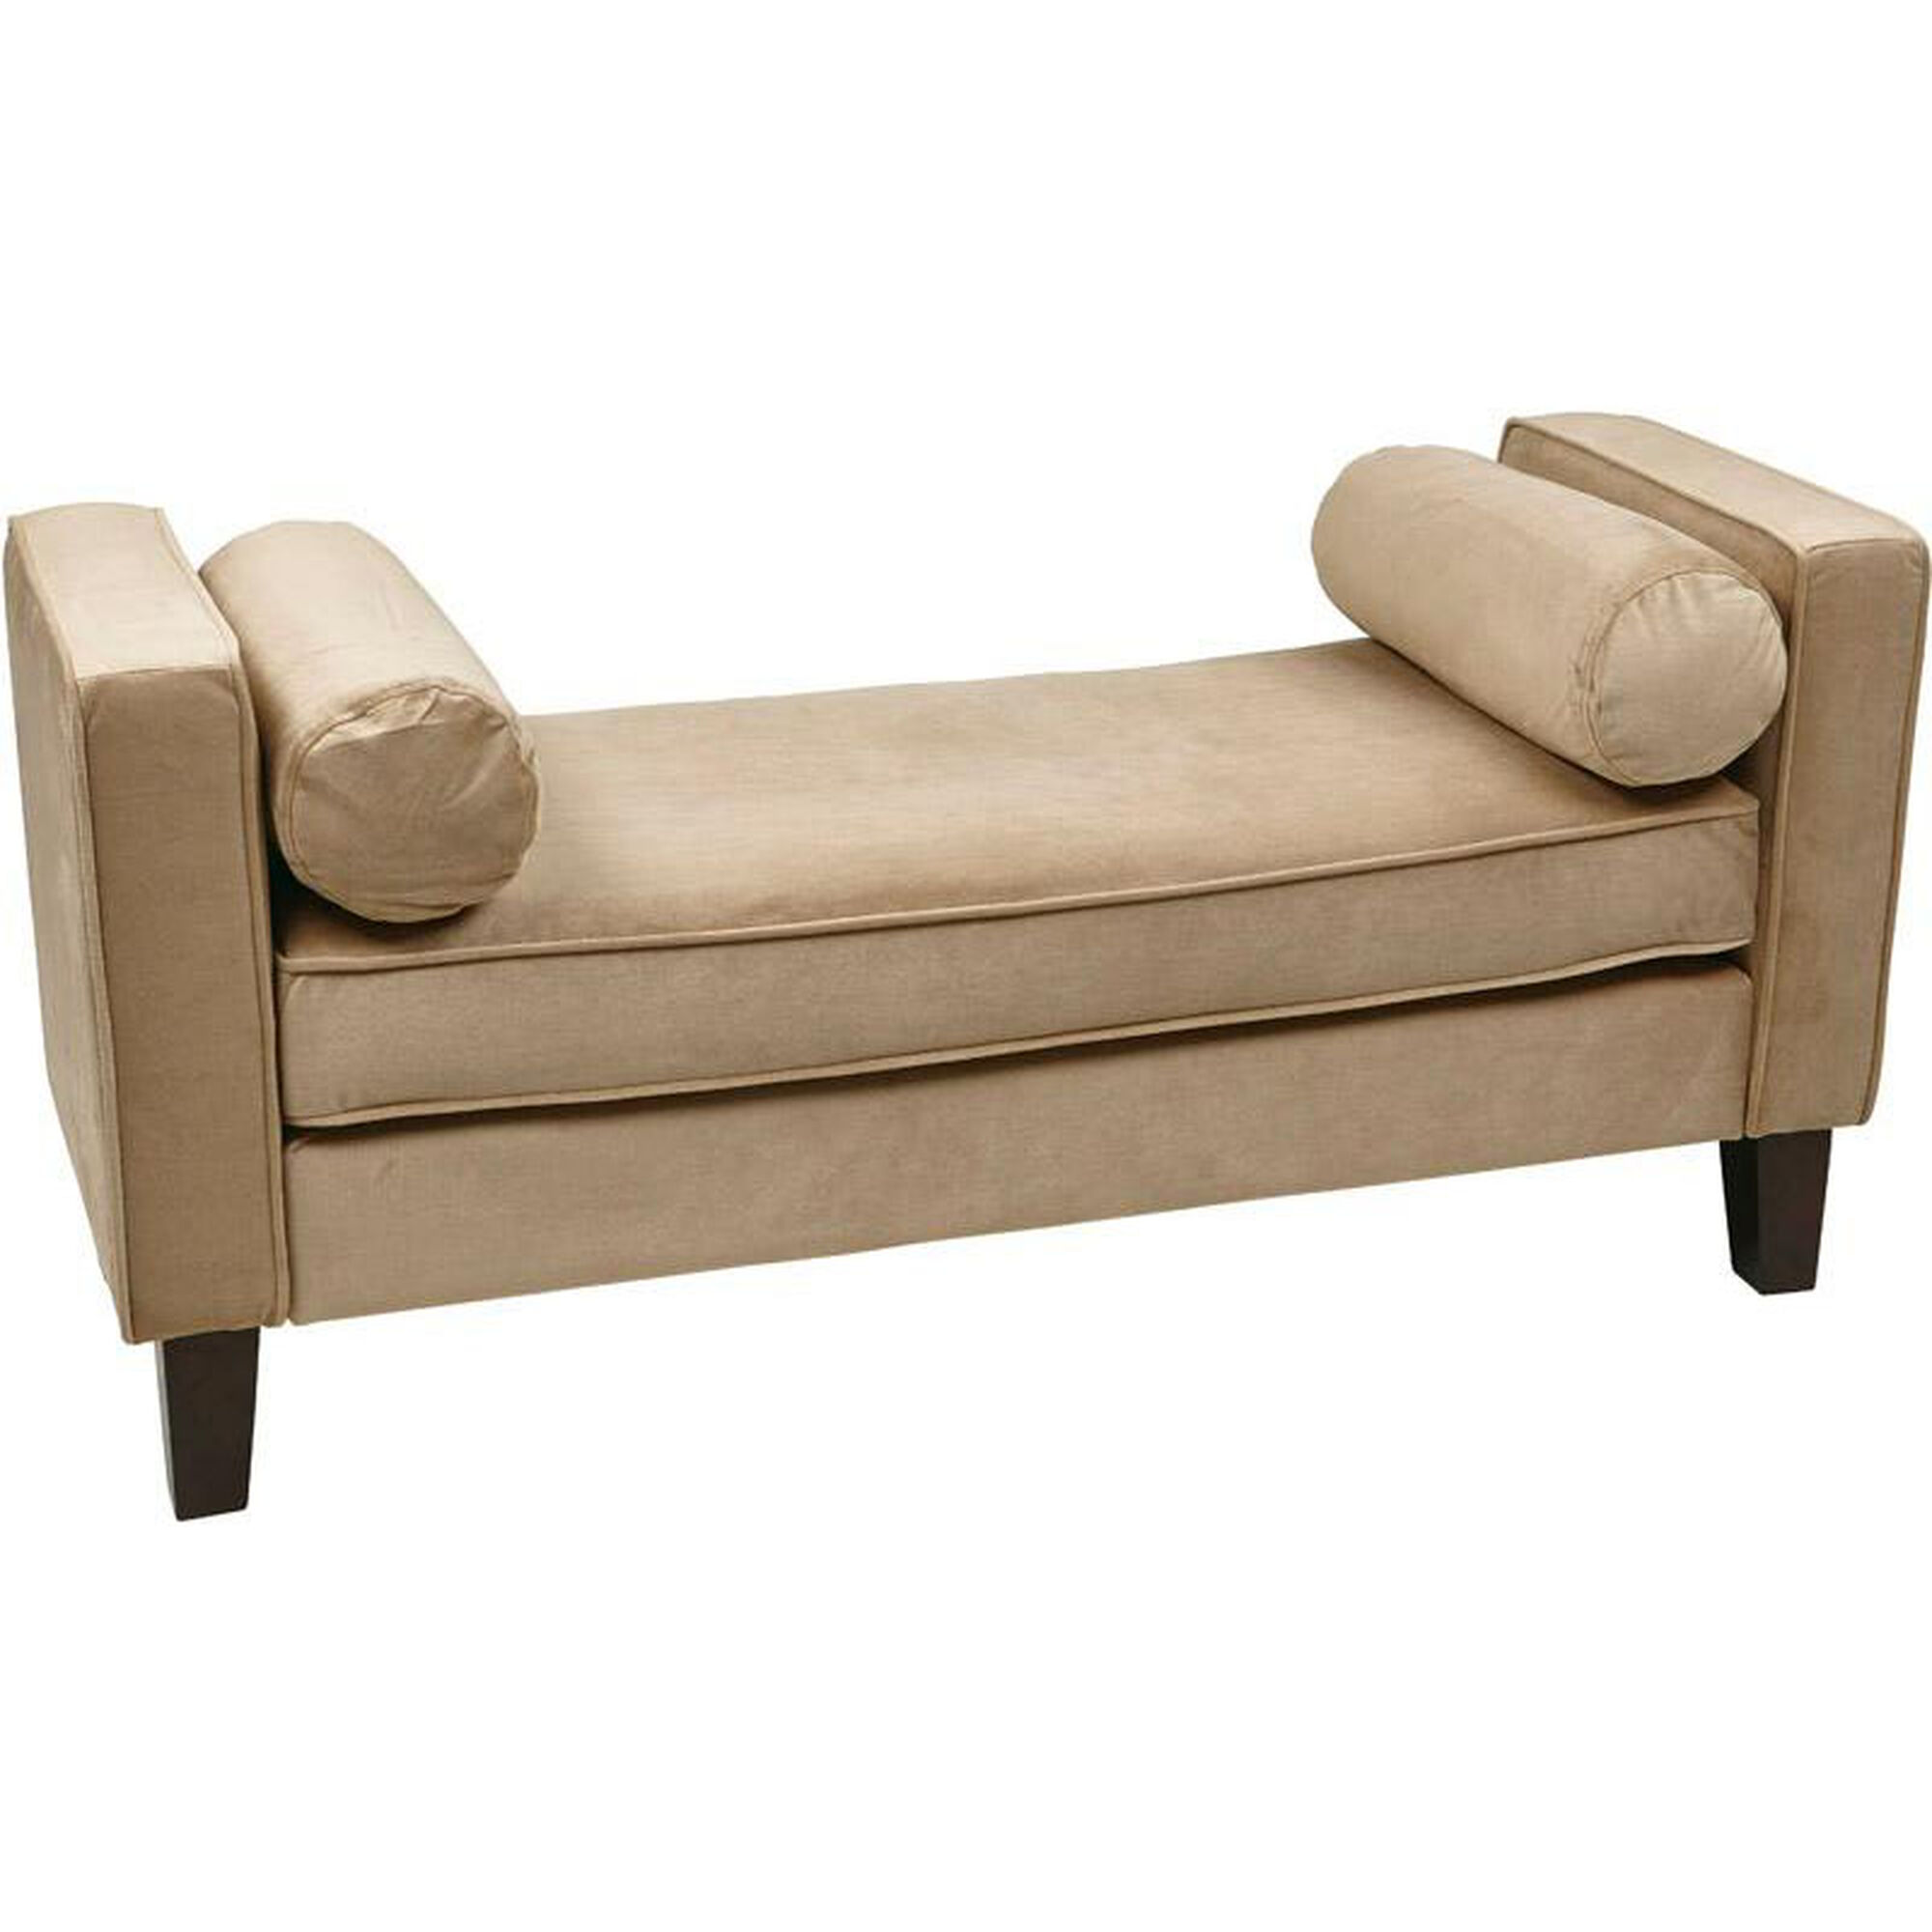 Our Ave Six Curves Velvet Upholstered Bench With Bolsters And Espresso Finish Legs